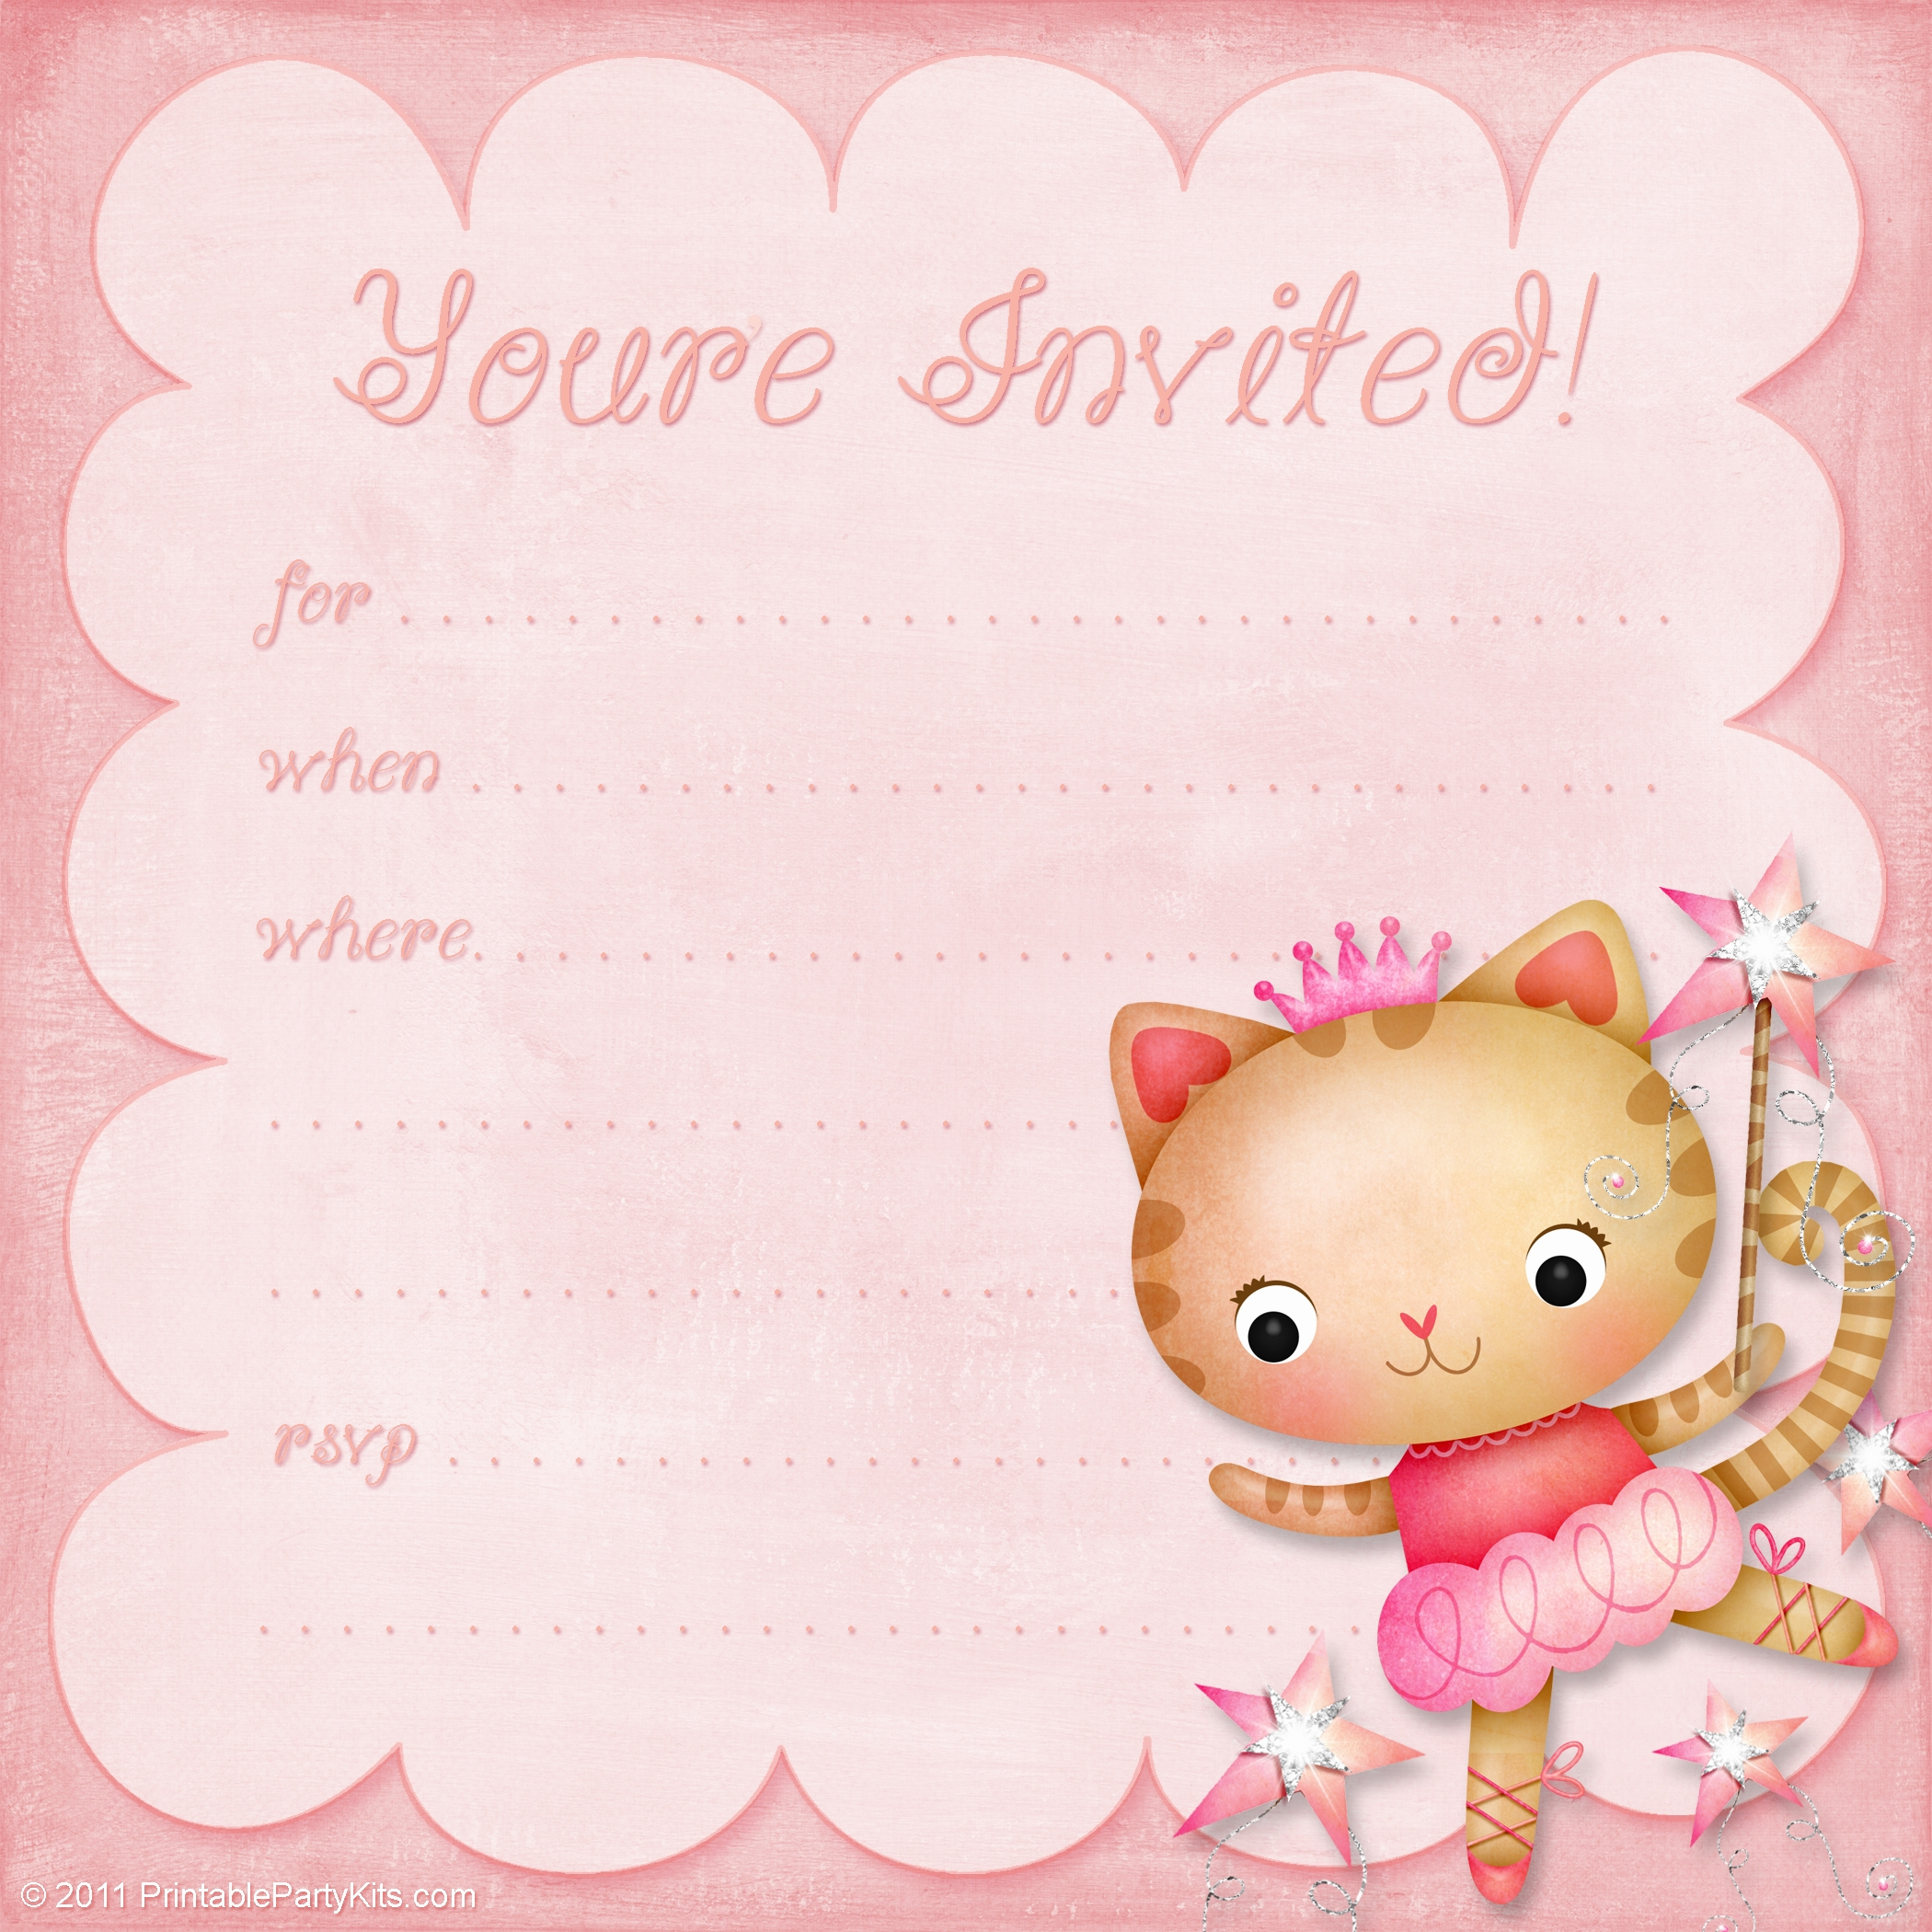 free printable birthday invitations with photo insert ; free-printable-birthday-invitations-with-photo-insert-were-cool-template-to-make-elegant-invitation-template